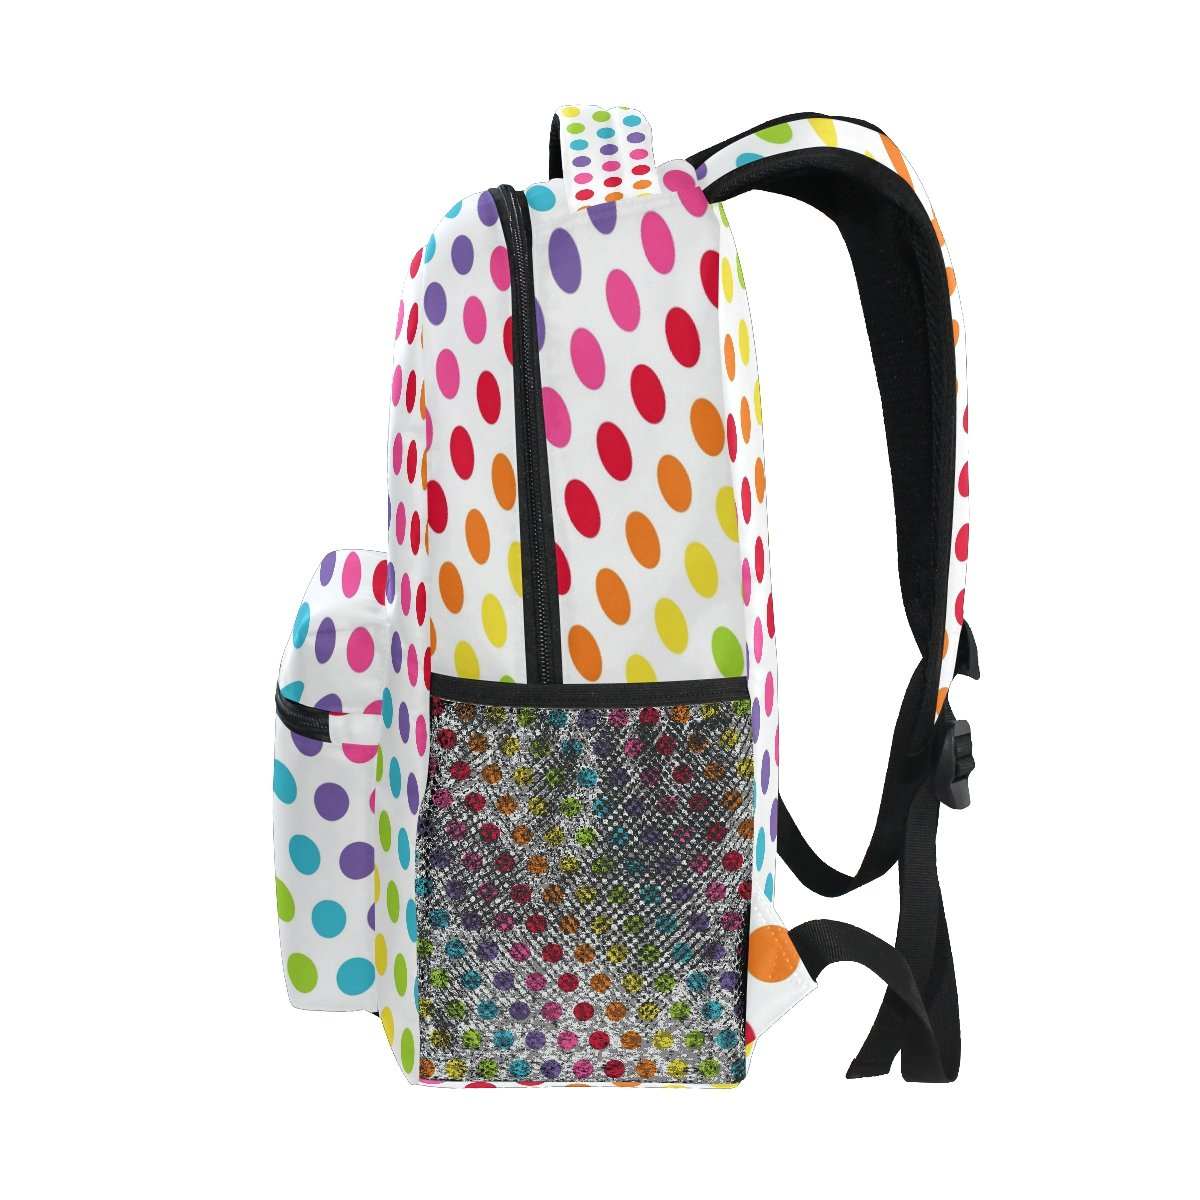 dfe93e2b2d6b Amazon.com  ZZKKO Colorful Rainbow Polka Dots Backpacks College School Book  Bag Travel Hiking Camping Daypack  Computers   Accessories